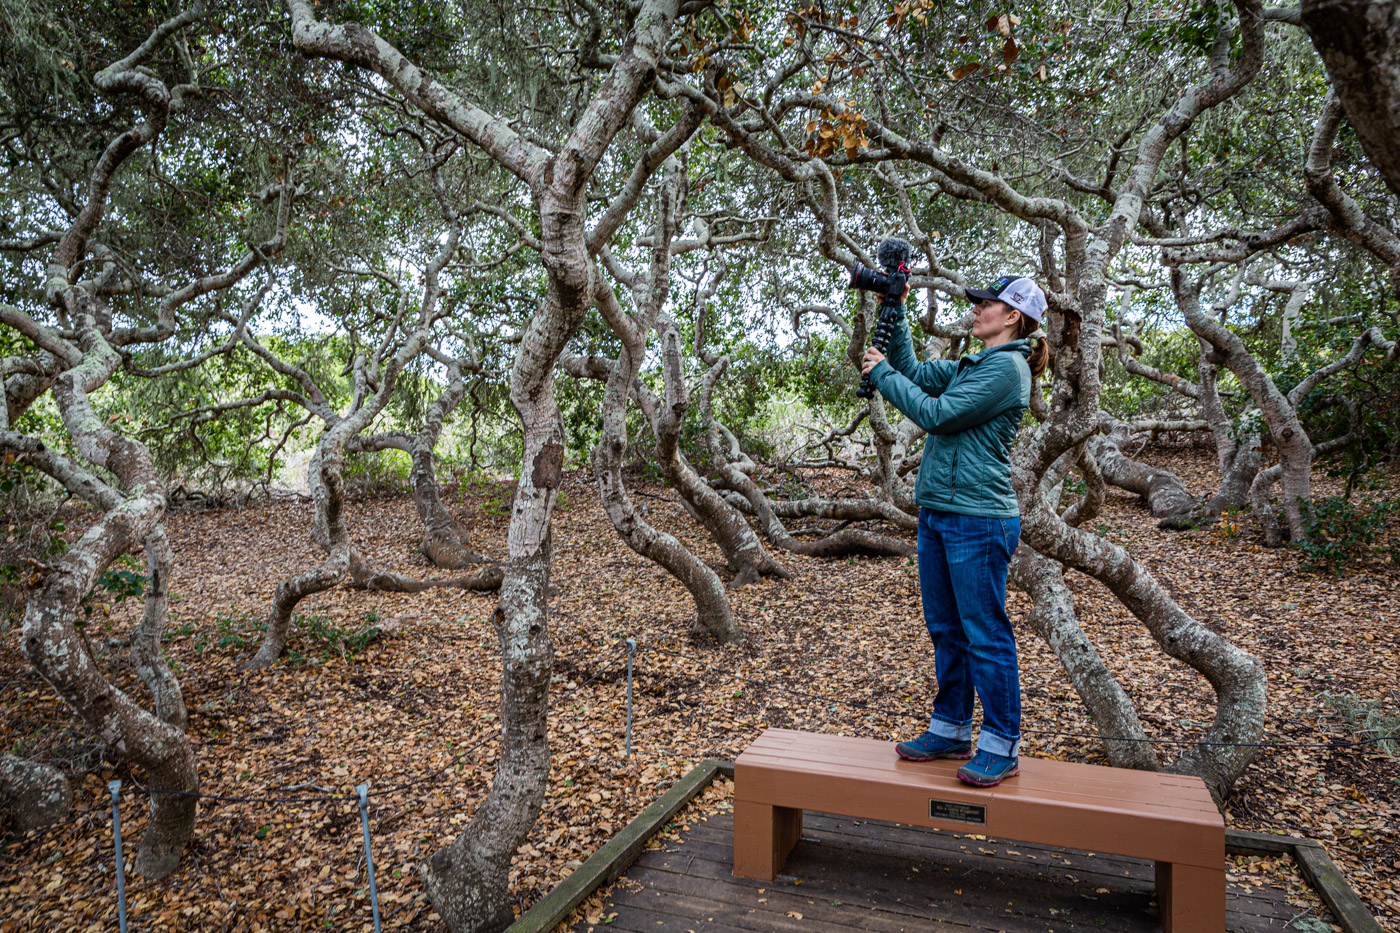 The Elfin Forest in Morro Bay